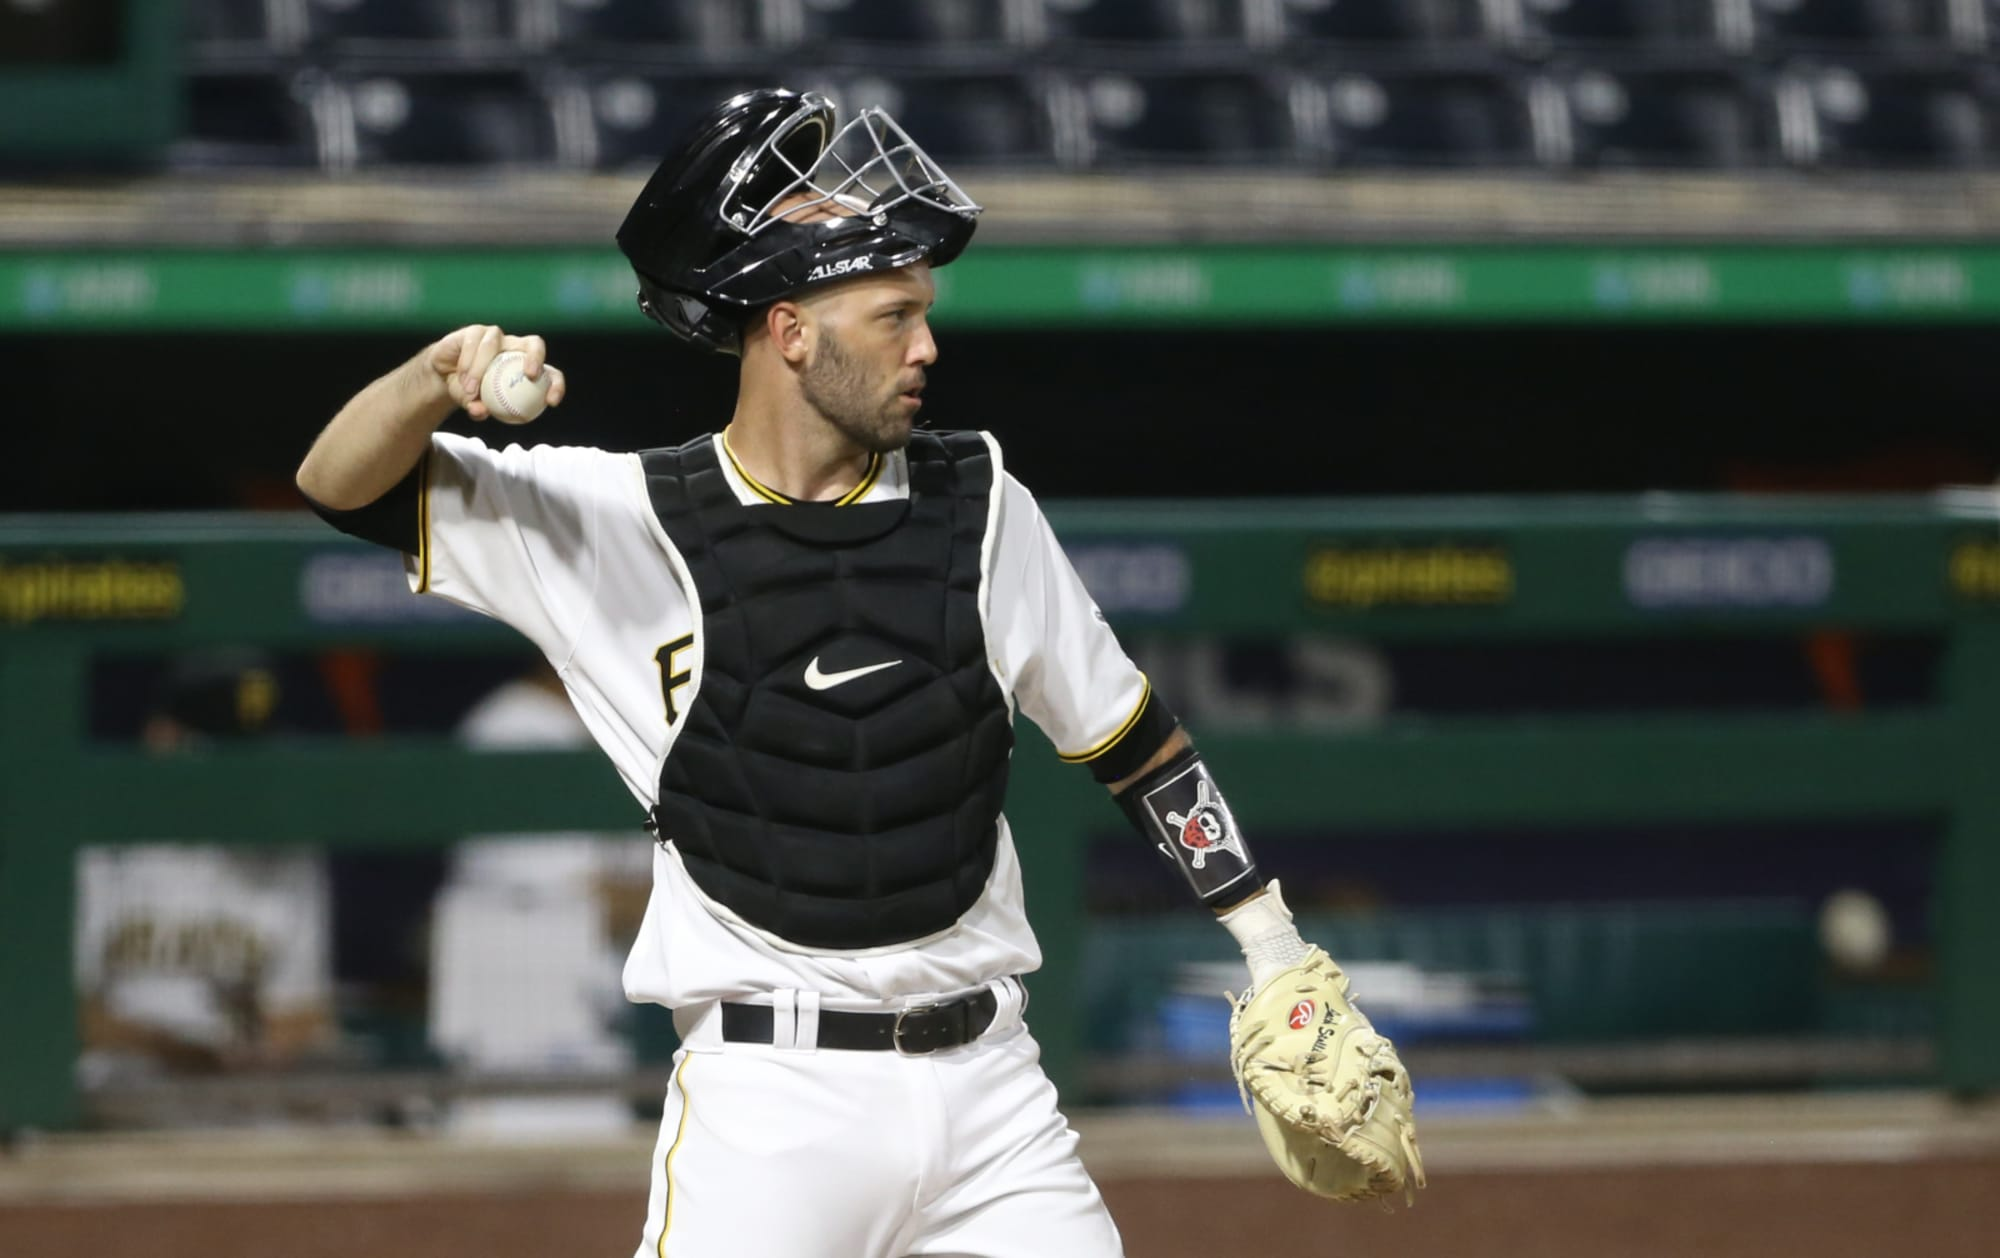 Pittsburgh Pirates: Jacob Stallings Should Win the Gold Glove